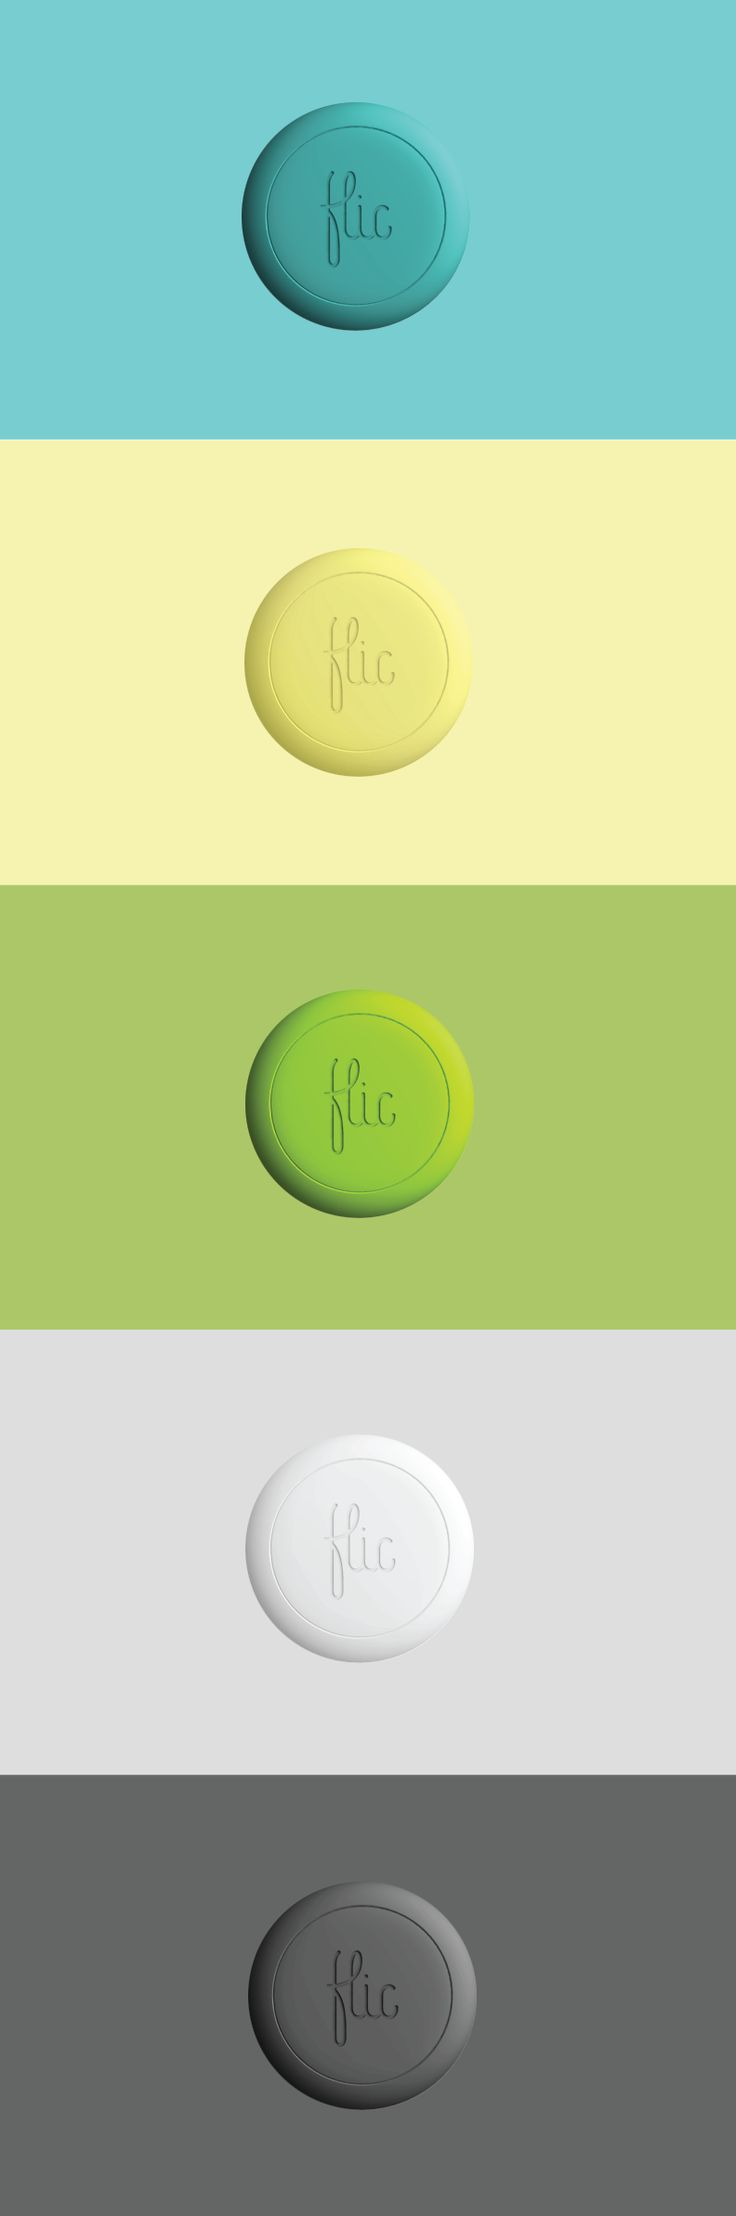 The colors of Flic. https://flic.io